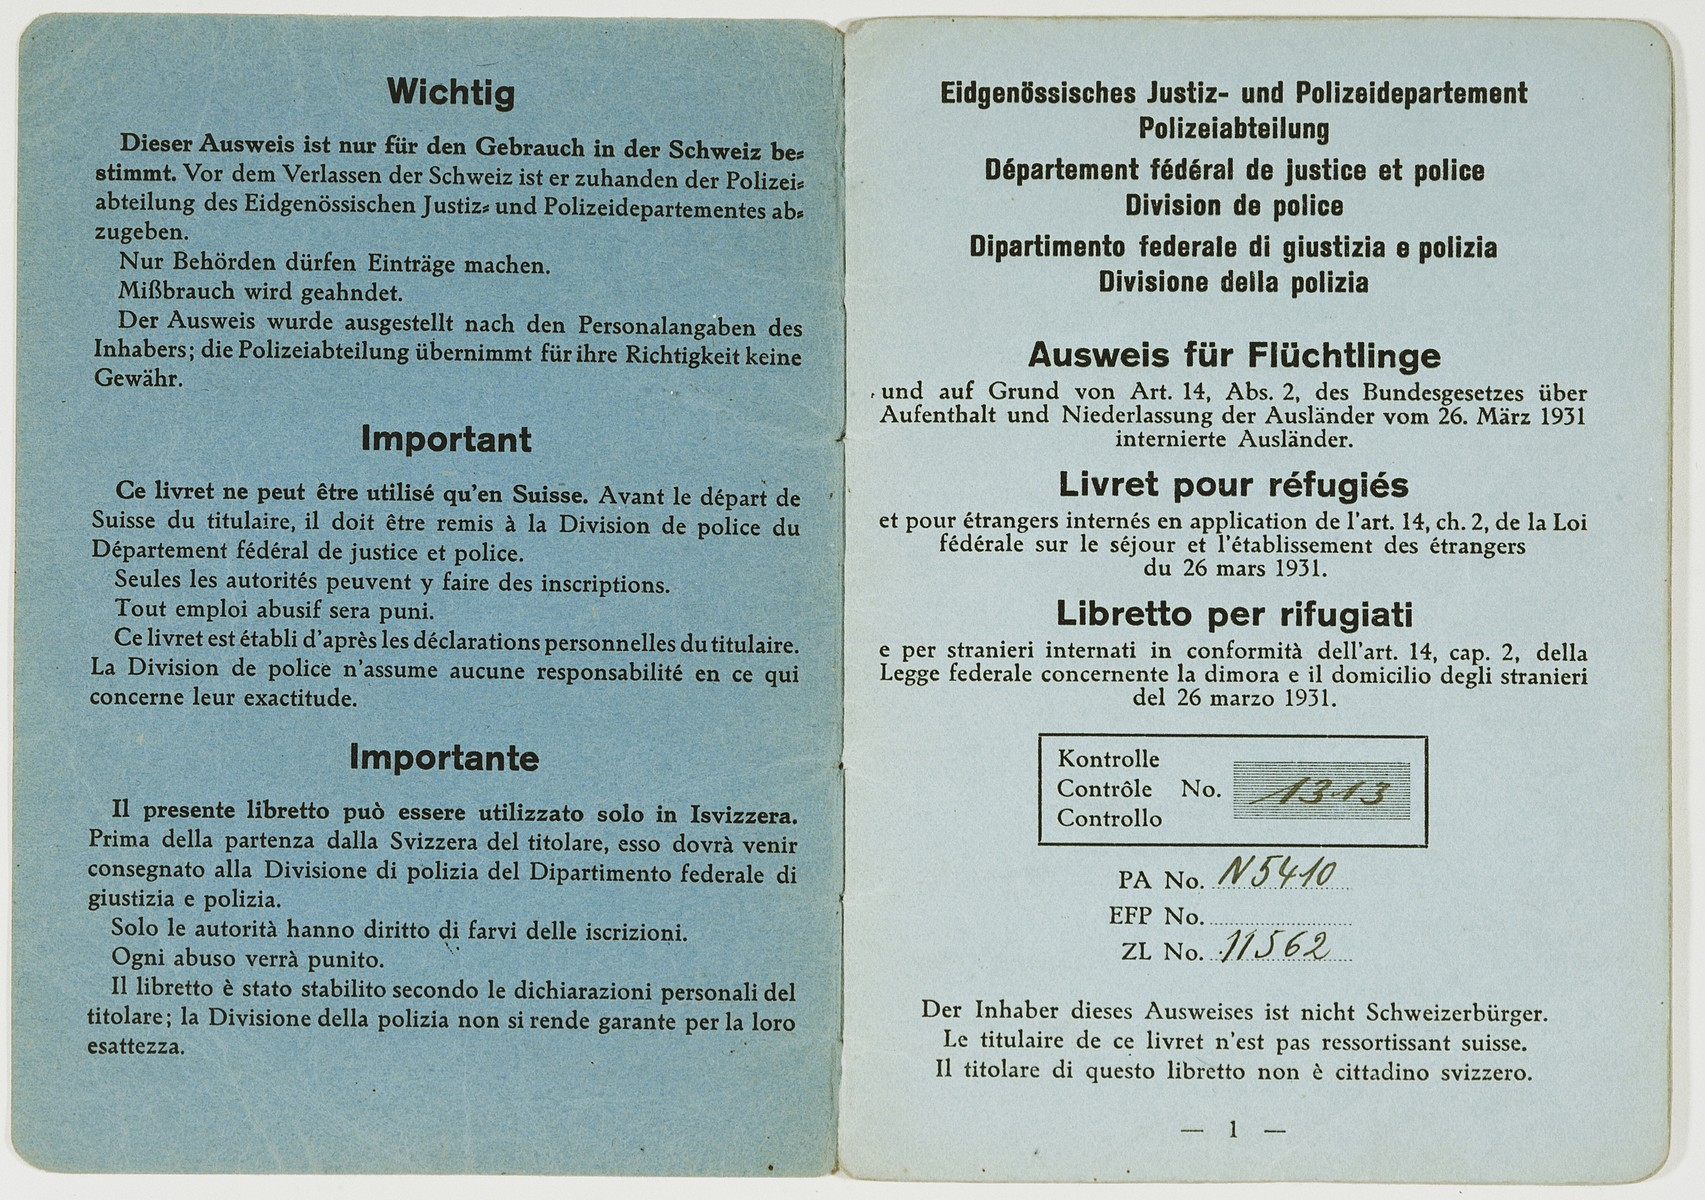 Refugee identification card issued to Edmund Dresner, a Jewish refugee, after his escape to Switzerland.